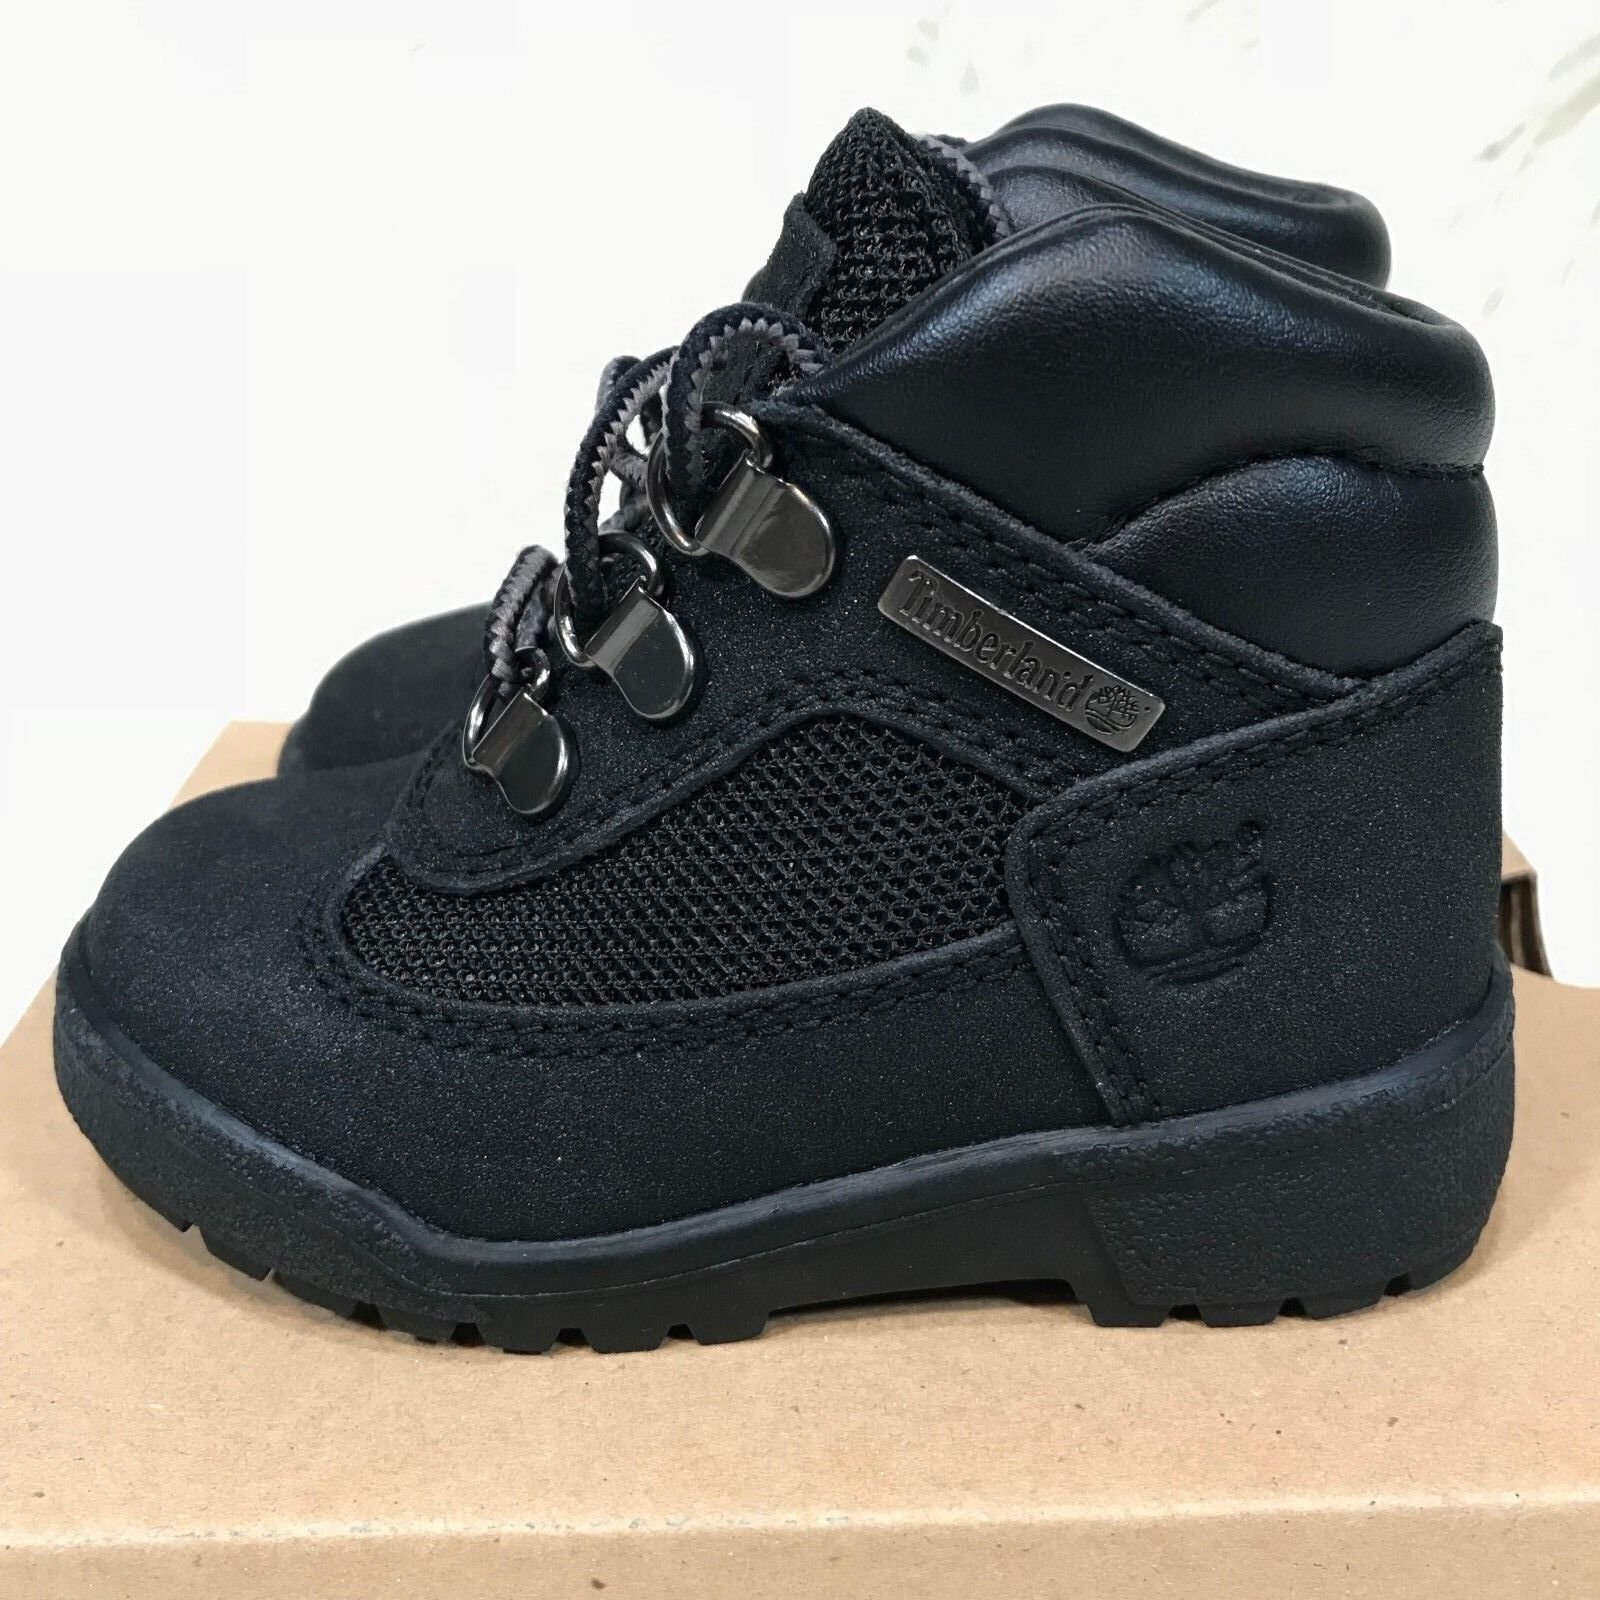 "TIMBERLAND FIELD BOOT TODDLER BLACK LEATHER WP KIDS BOOTS ""NIB"""